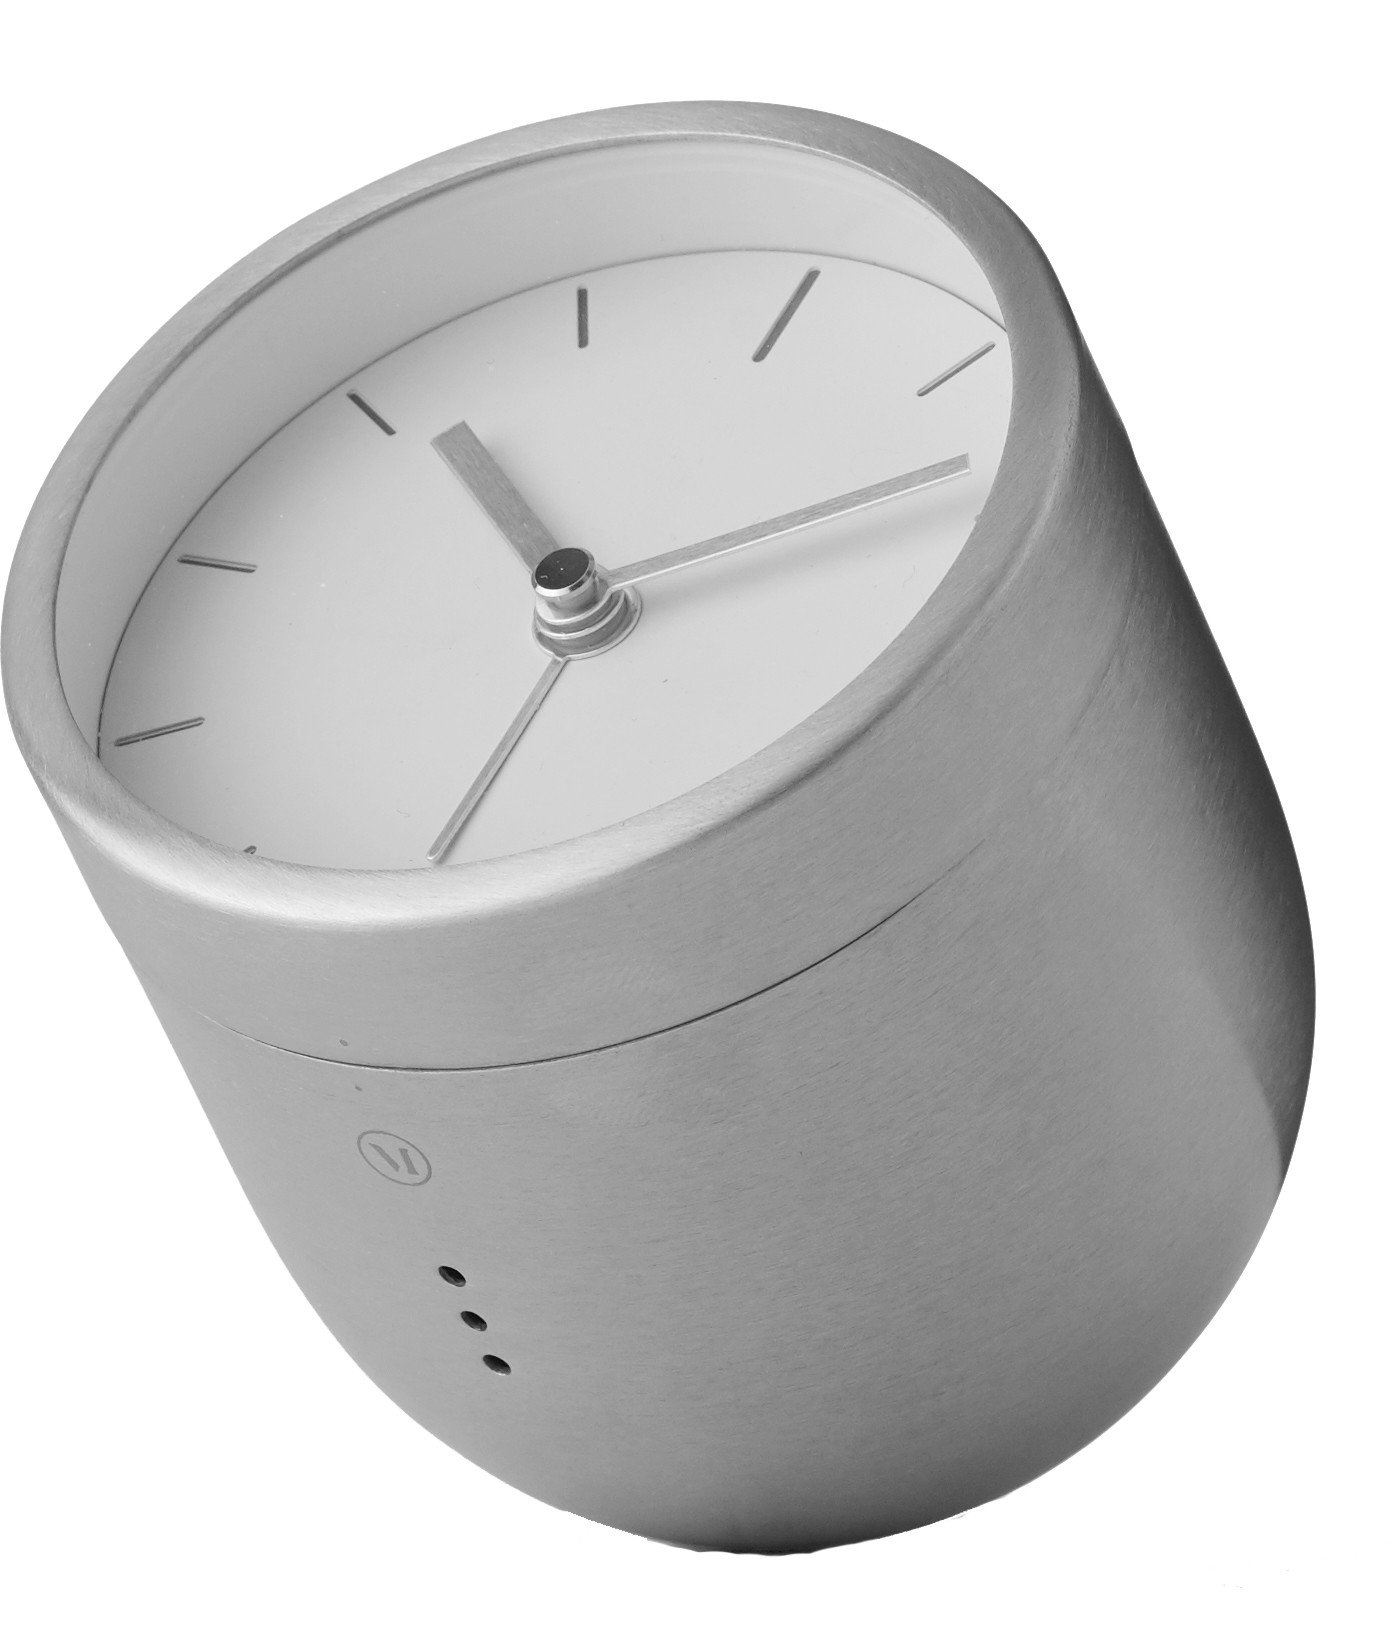 Tumbler Alarm Clock Steel by Norm Architects for Menu